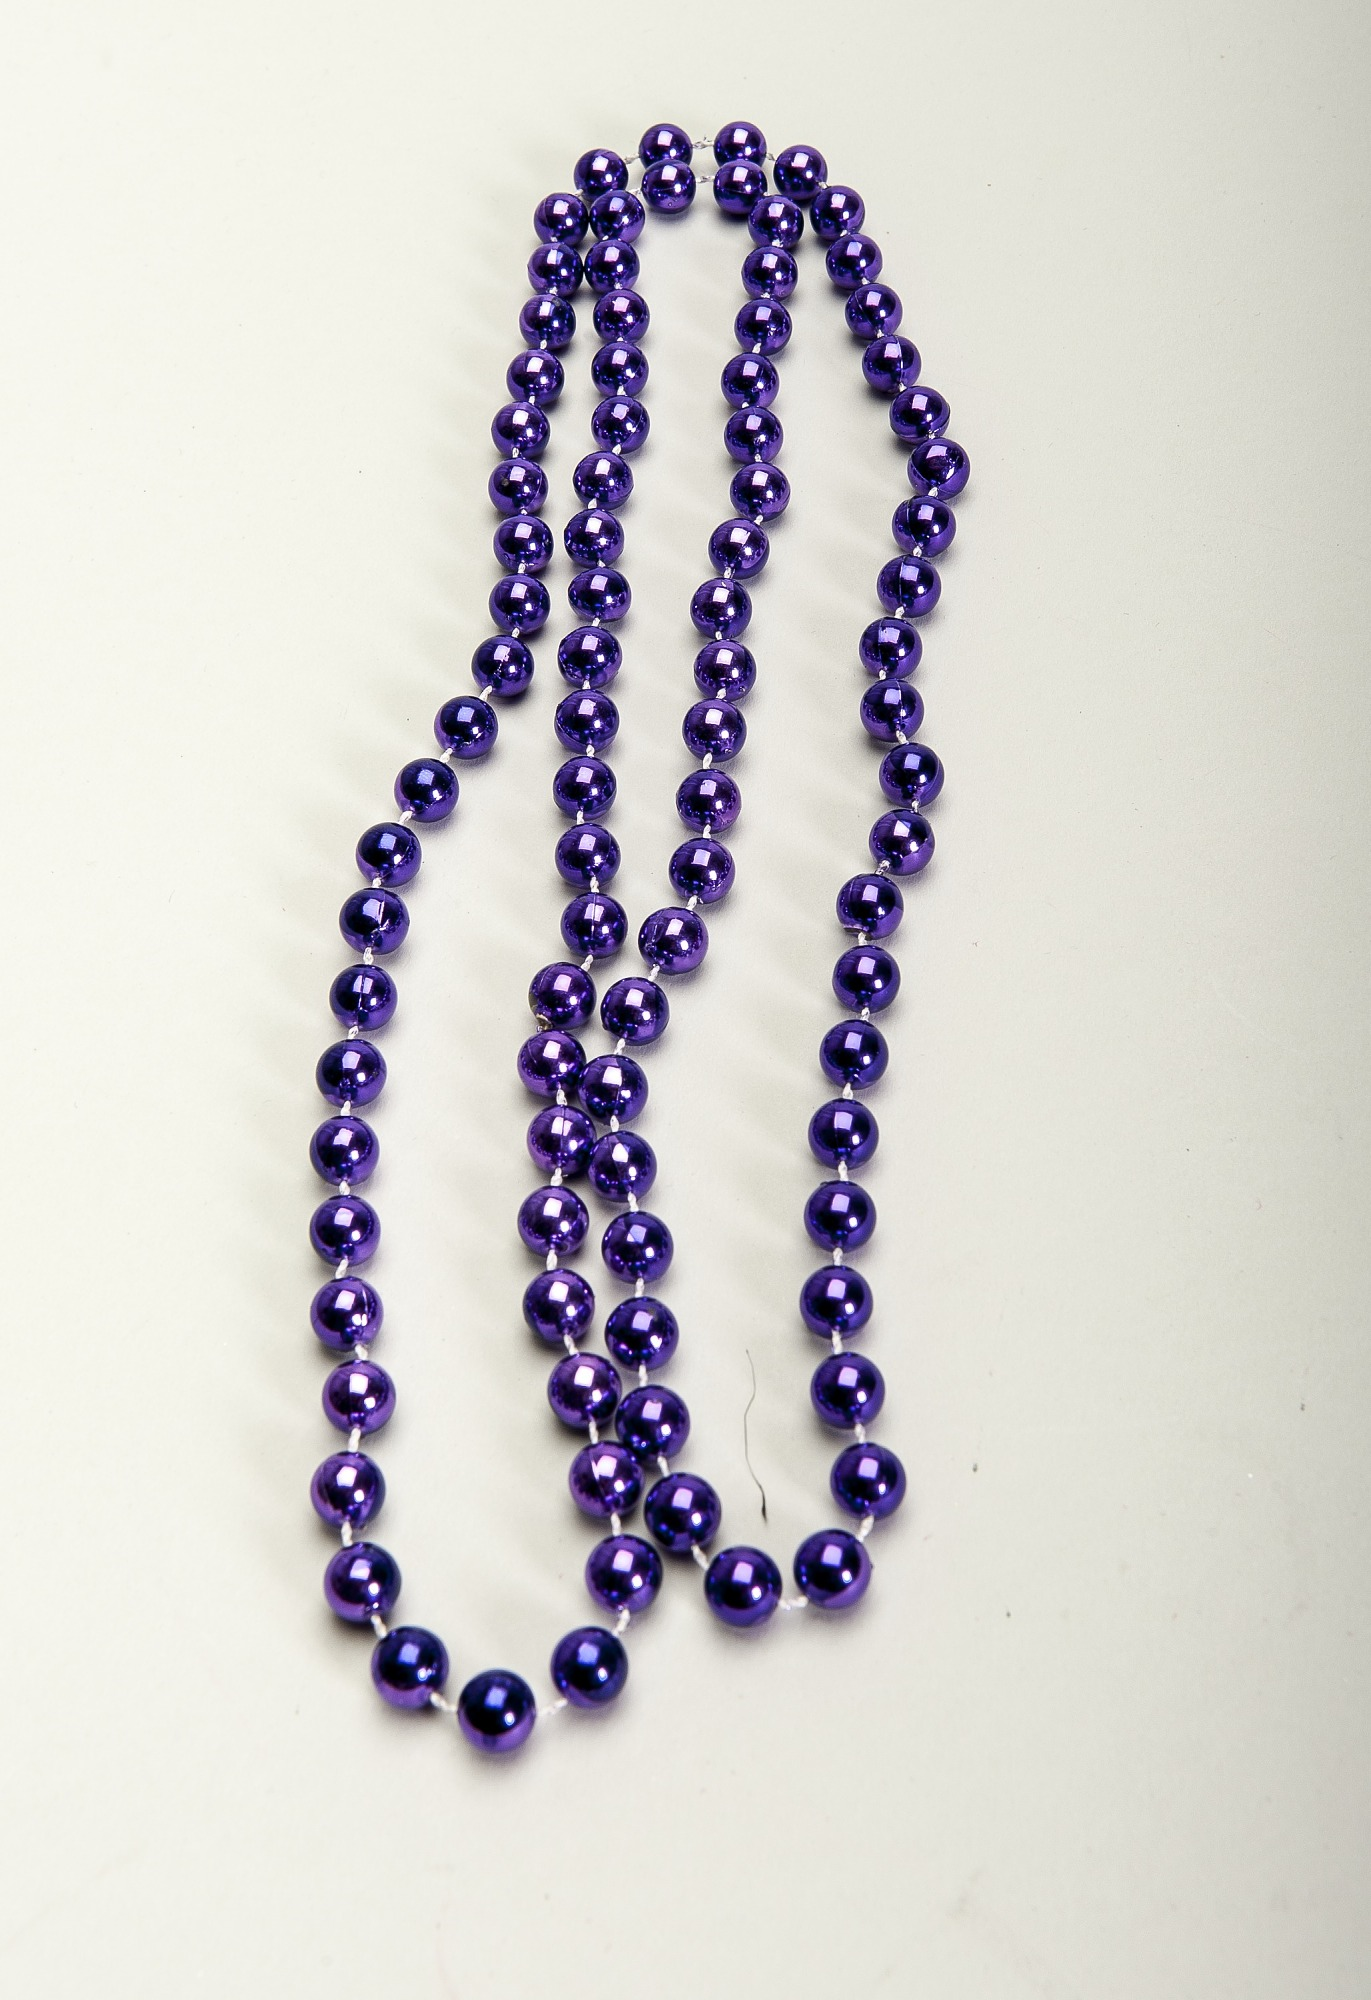 images for Mardi Gras beads (purple 1)